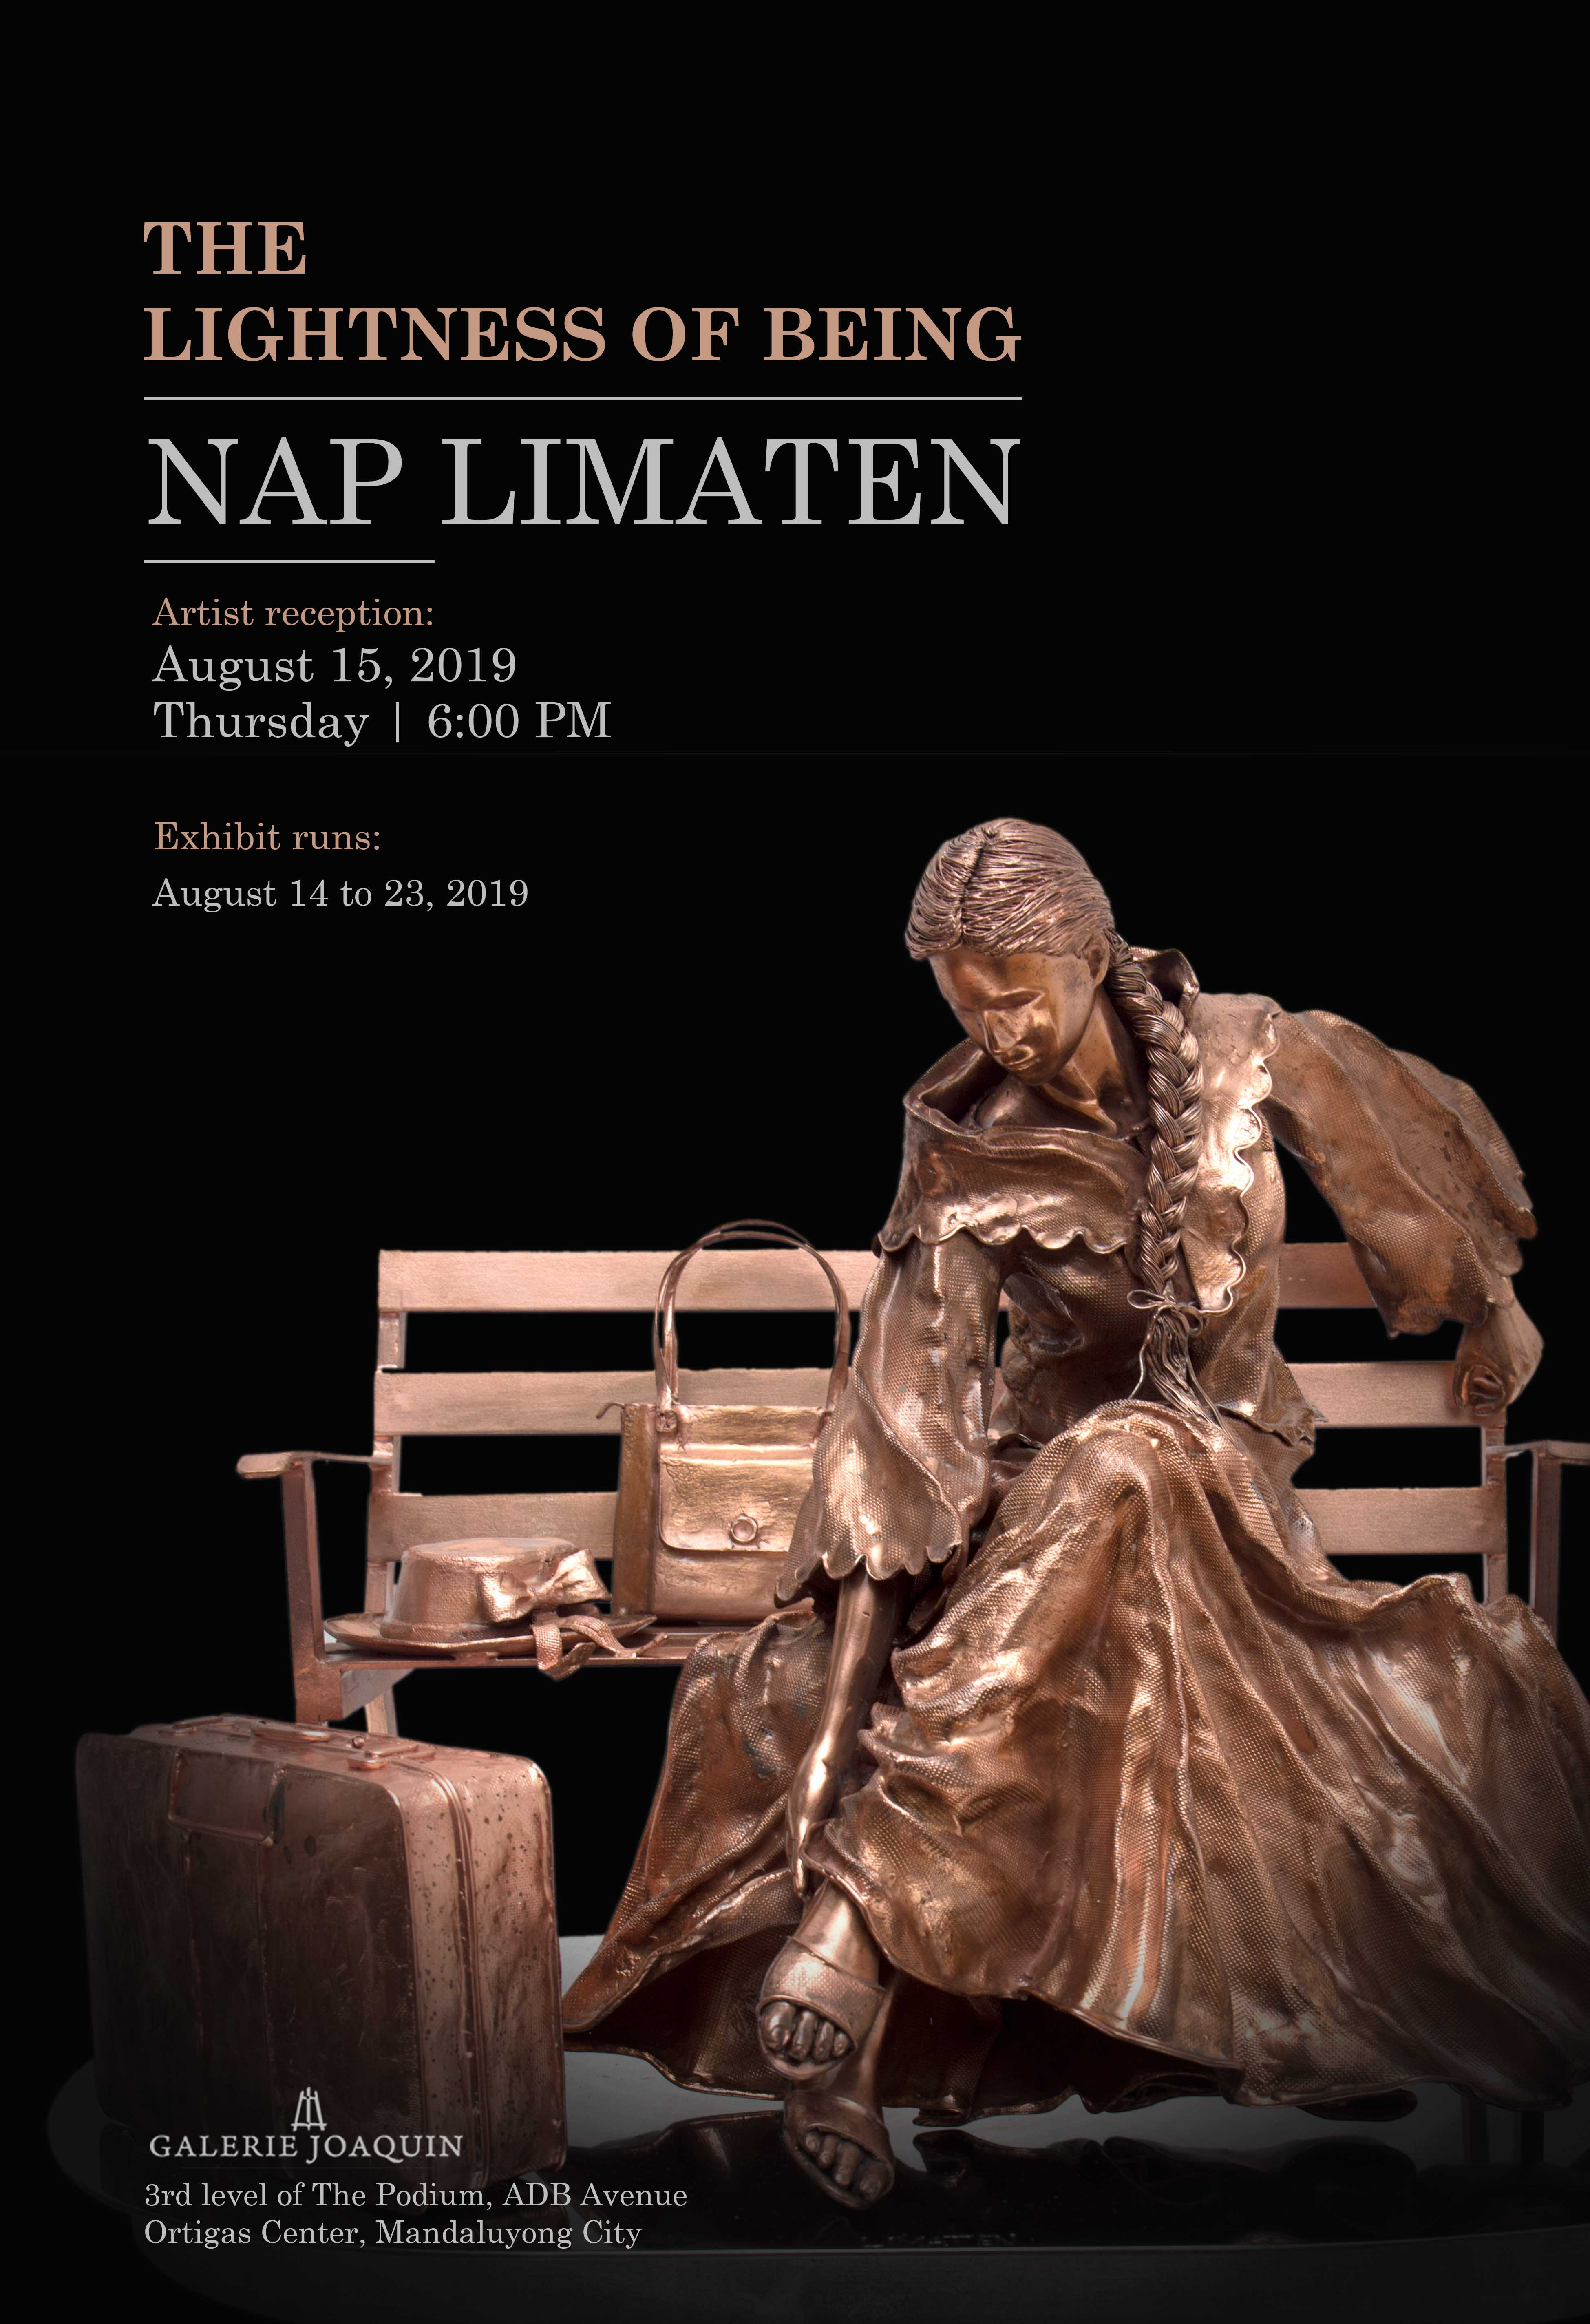 """TWO-MAN EXHIBIT: """"THE LIGHTNESS OF BEING"""" BY NAP LIMATEN AND """"THE ALLURE OF MOTION"""" BY KATRINA CUENCA"""